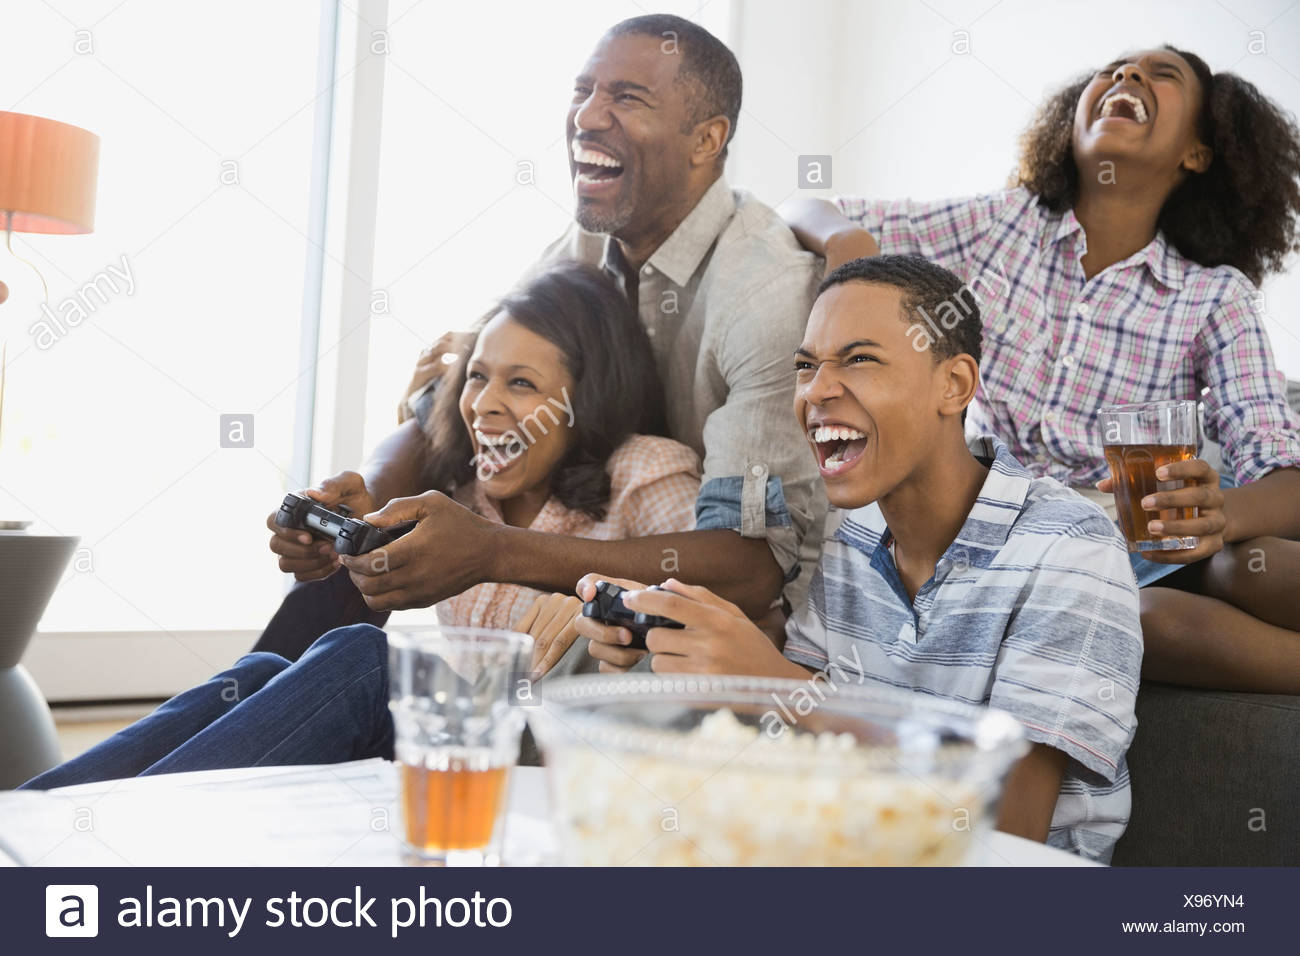 Family playing video games at home - Stock Image